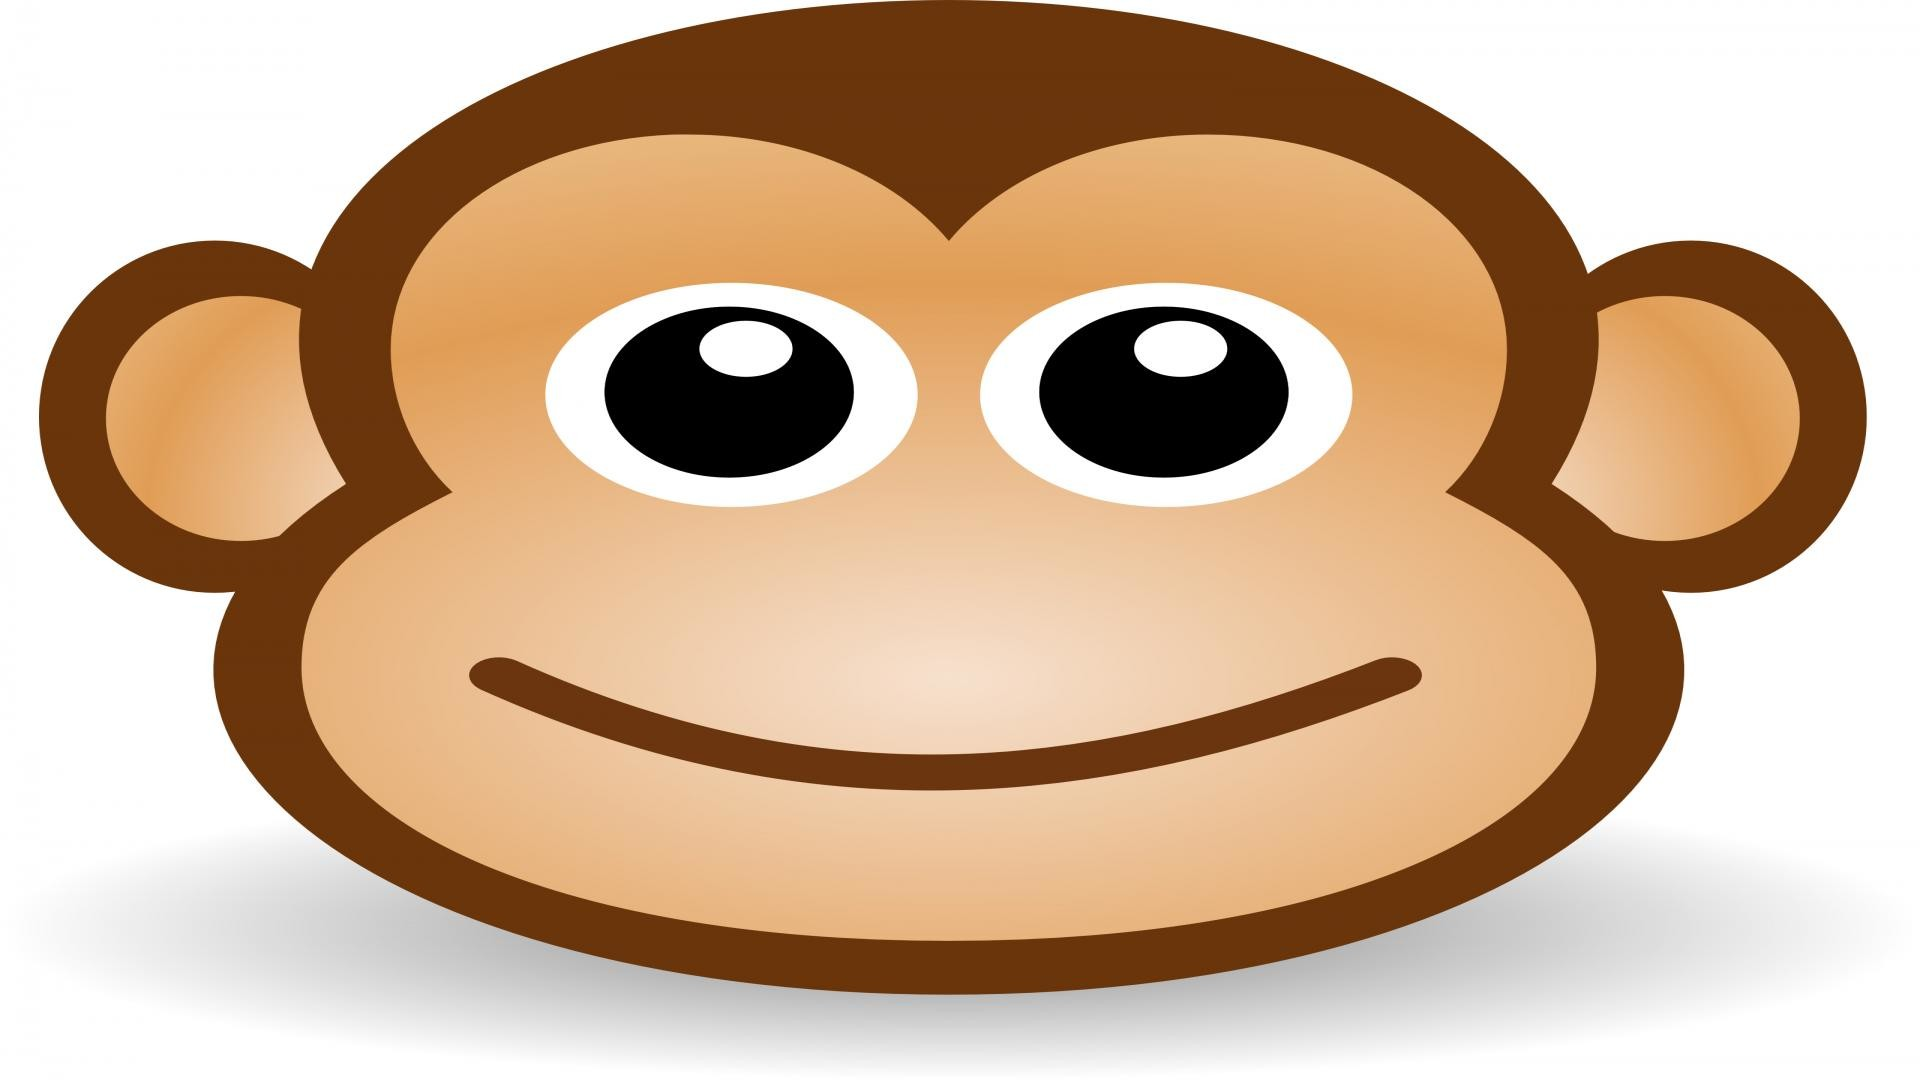 Cute Monkey Wallpapers 47 Images